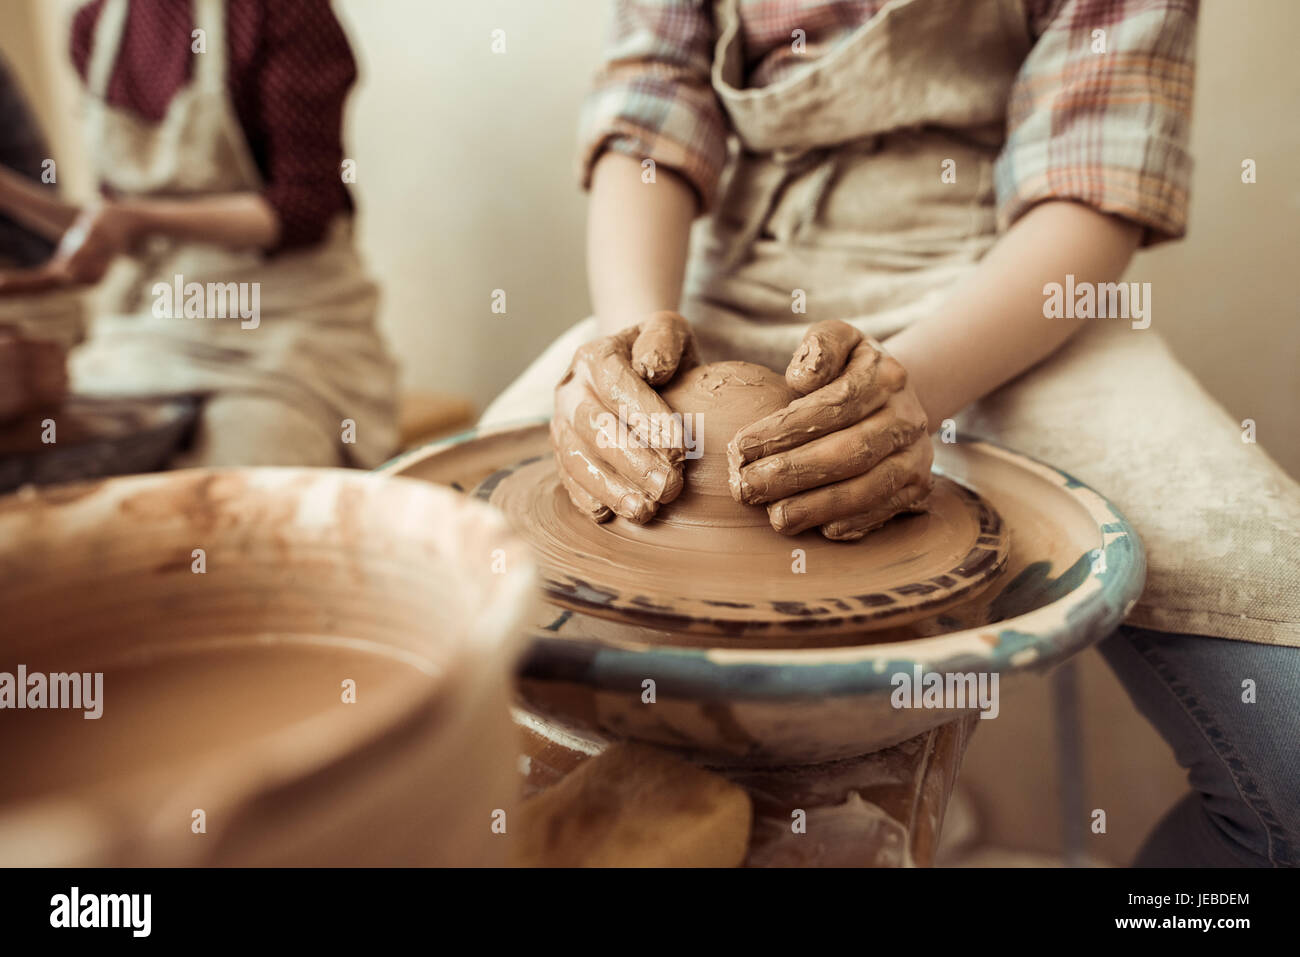 Close up of child hands working on pottery wheel at workshop - Stock Image